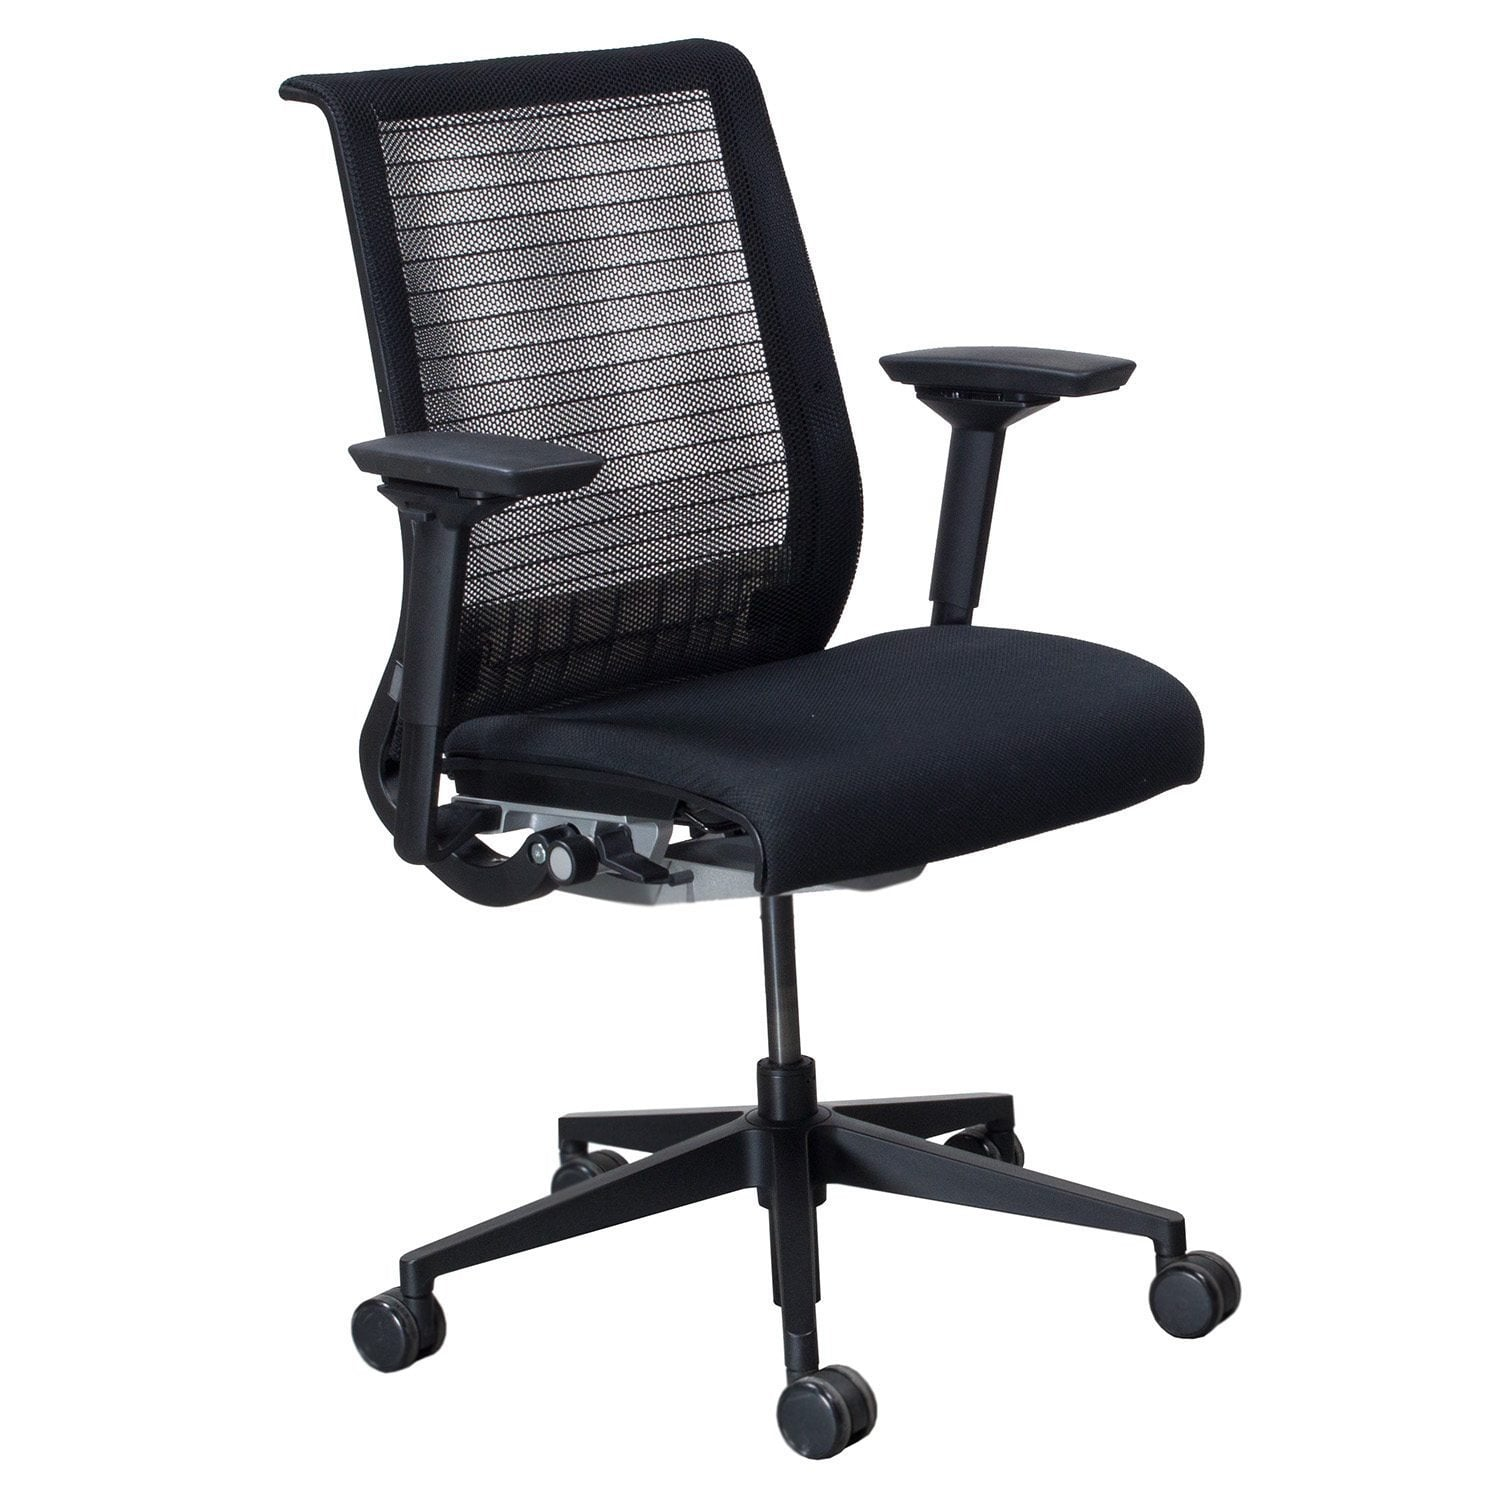 Best Task Chair 2015 Steelcase Think Used Task Chair Black Mesh National